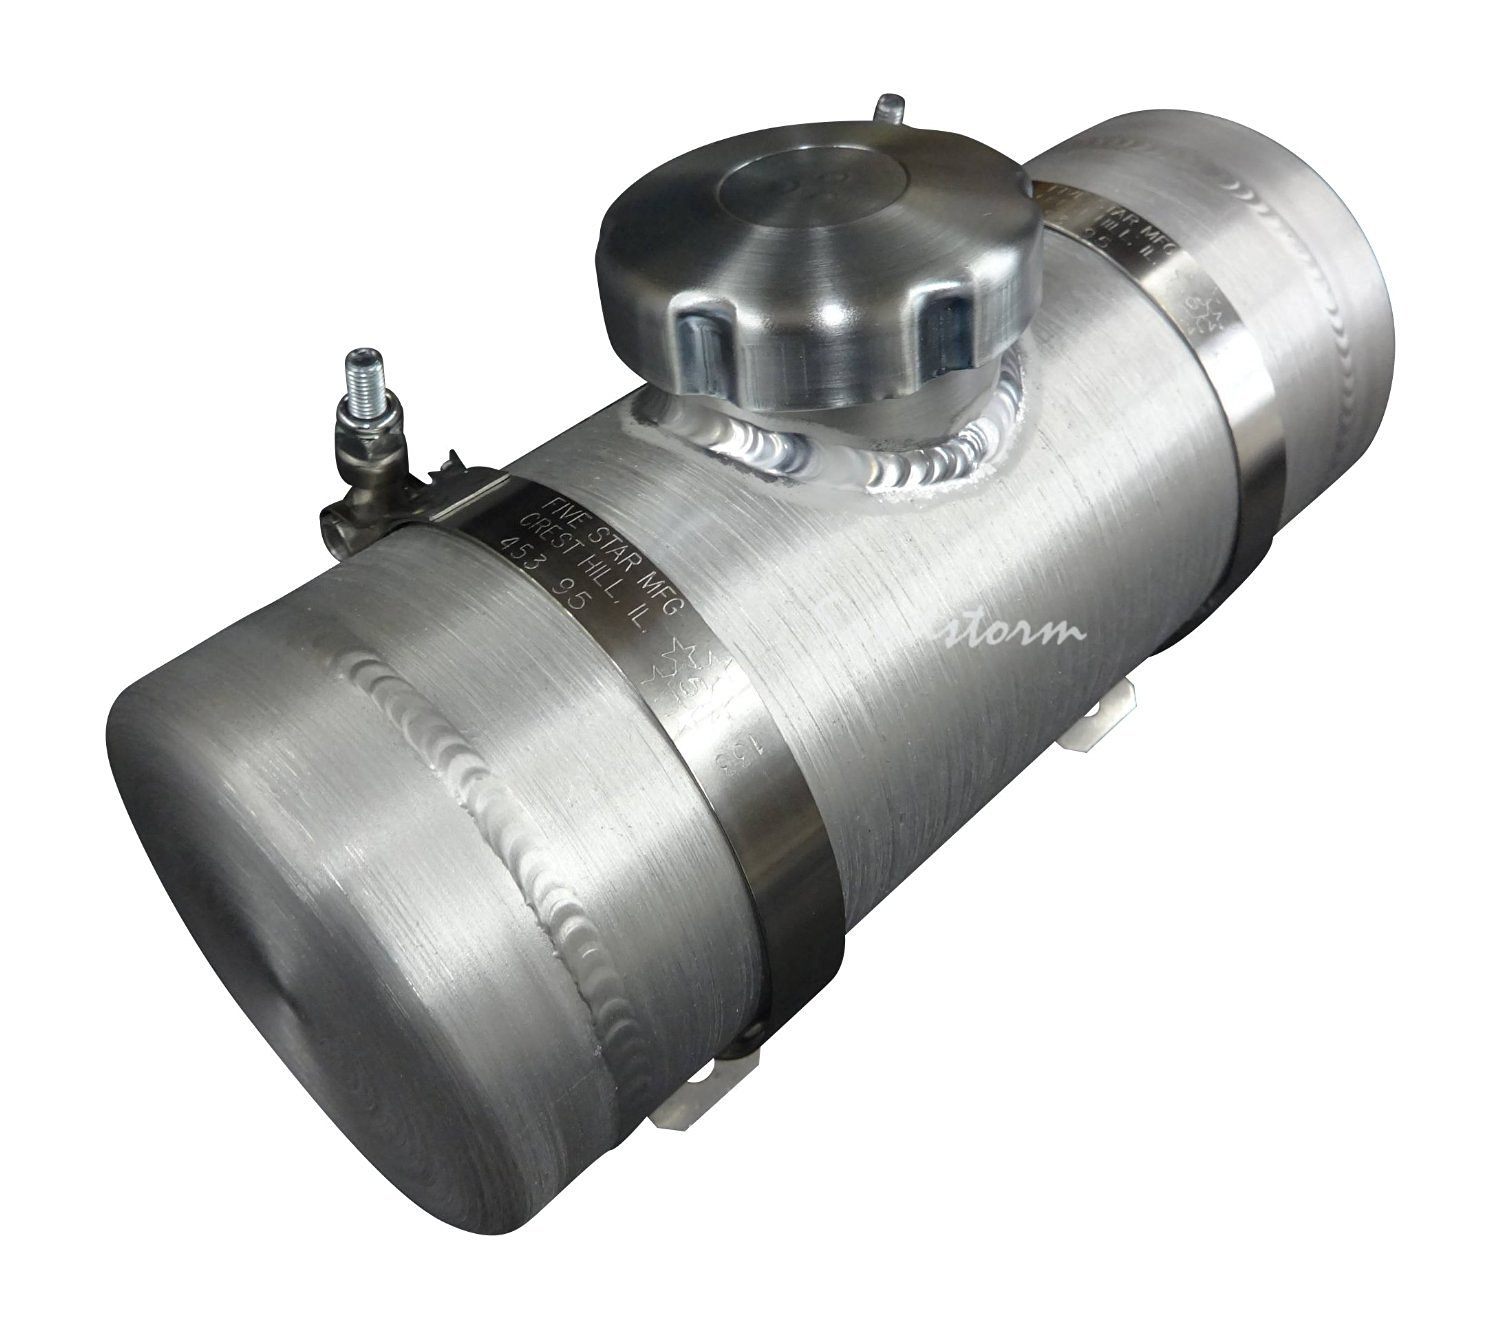 1//4 NPT 2.0 Gallon 8x10 Center Fill Spun Aluminum Gas Tank Go Kart Racing